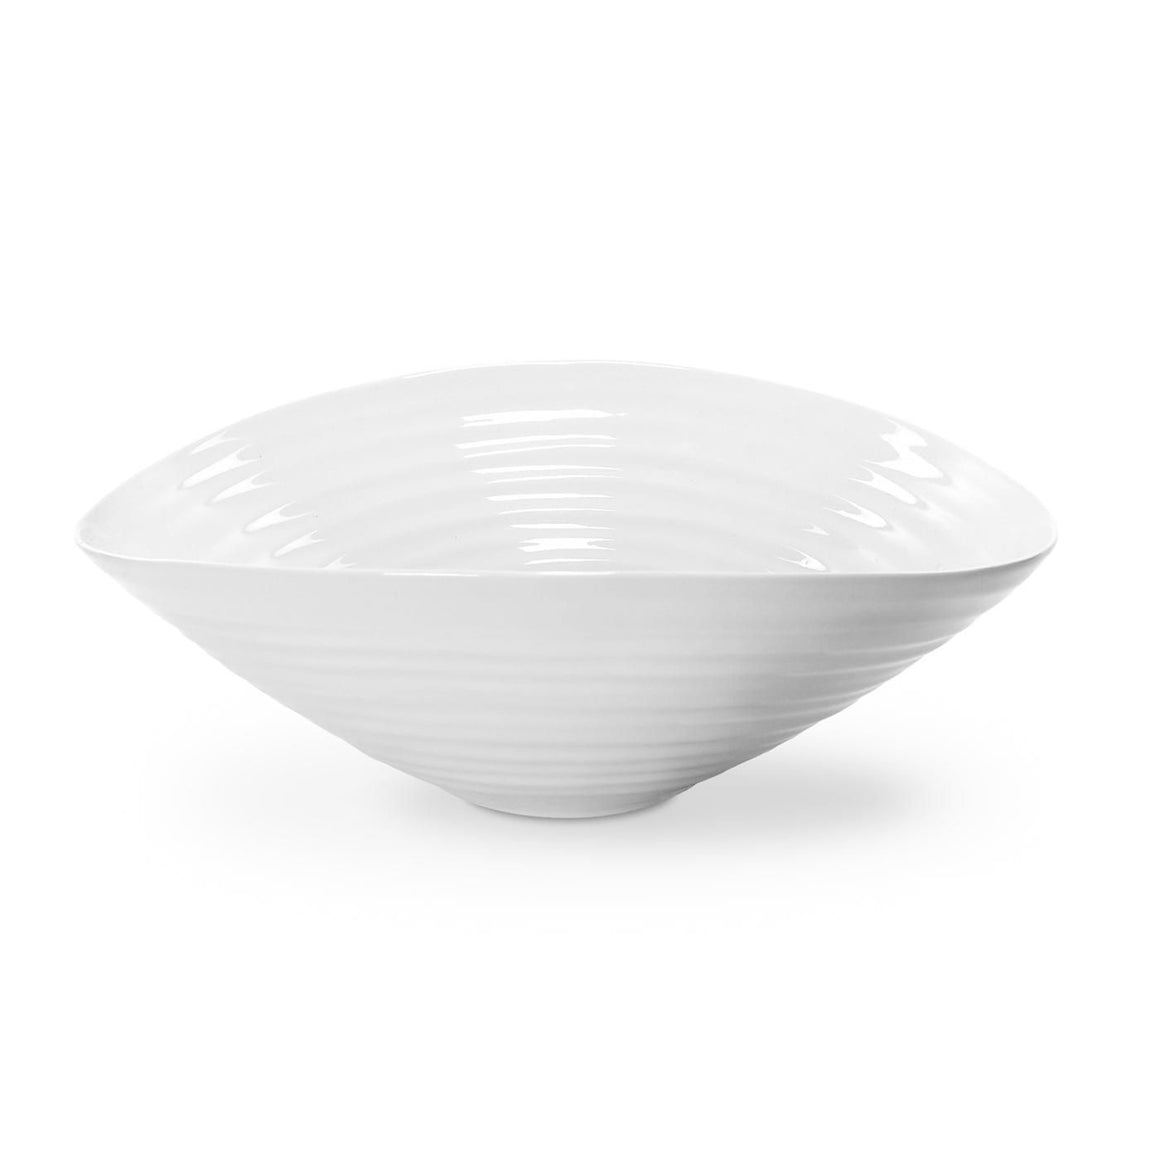 Sophie Conran Large Salad Bowl